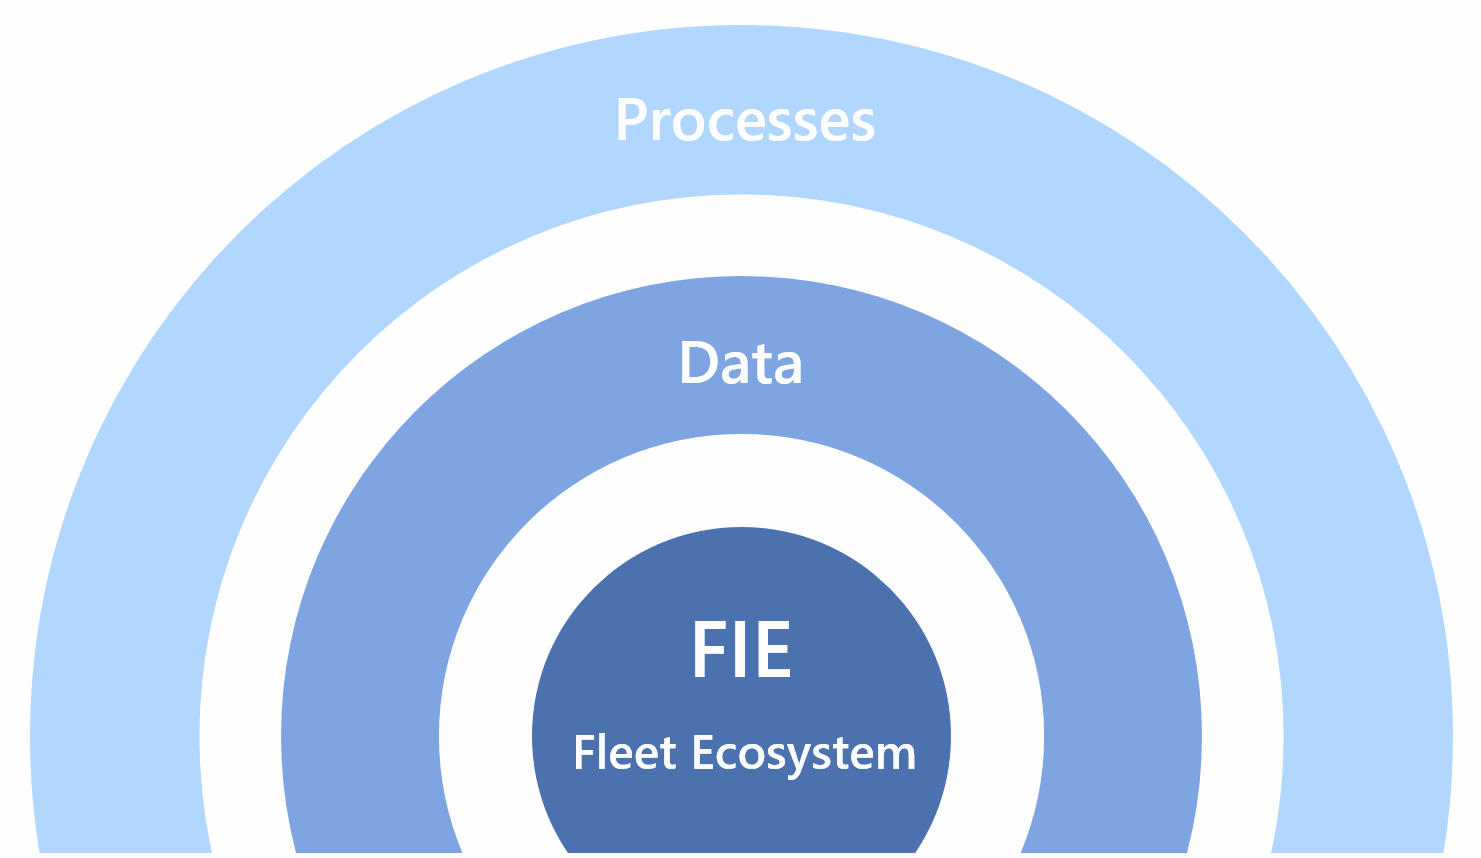 FIE Ecosystem - Fleet and Mobility